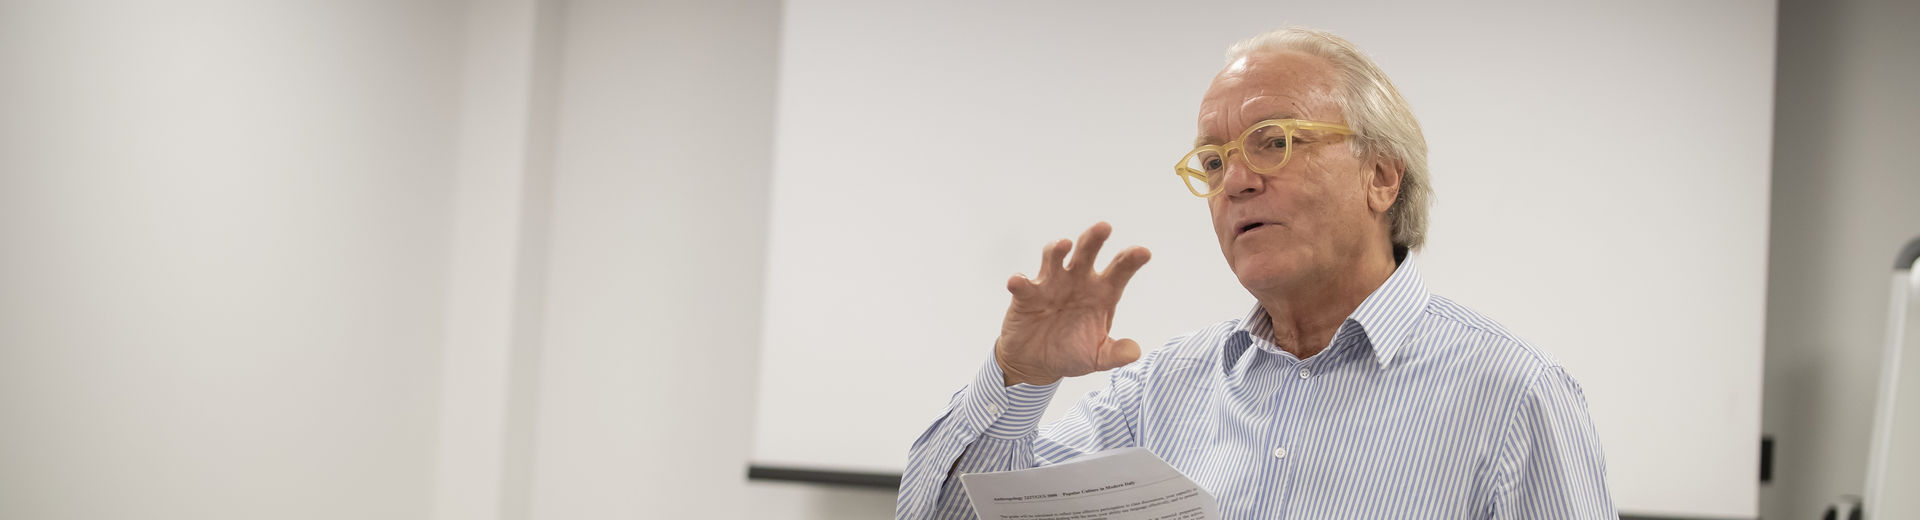 Male professor lecturing to classroom